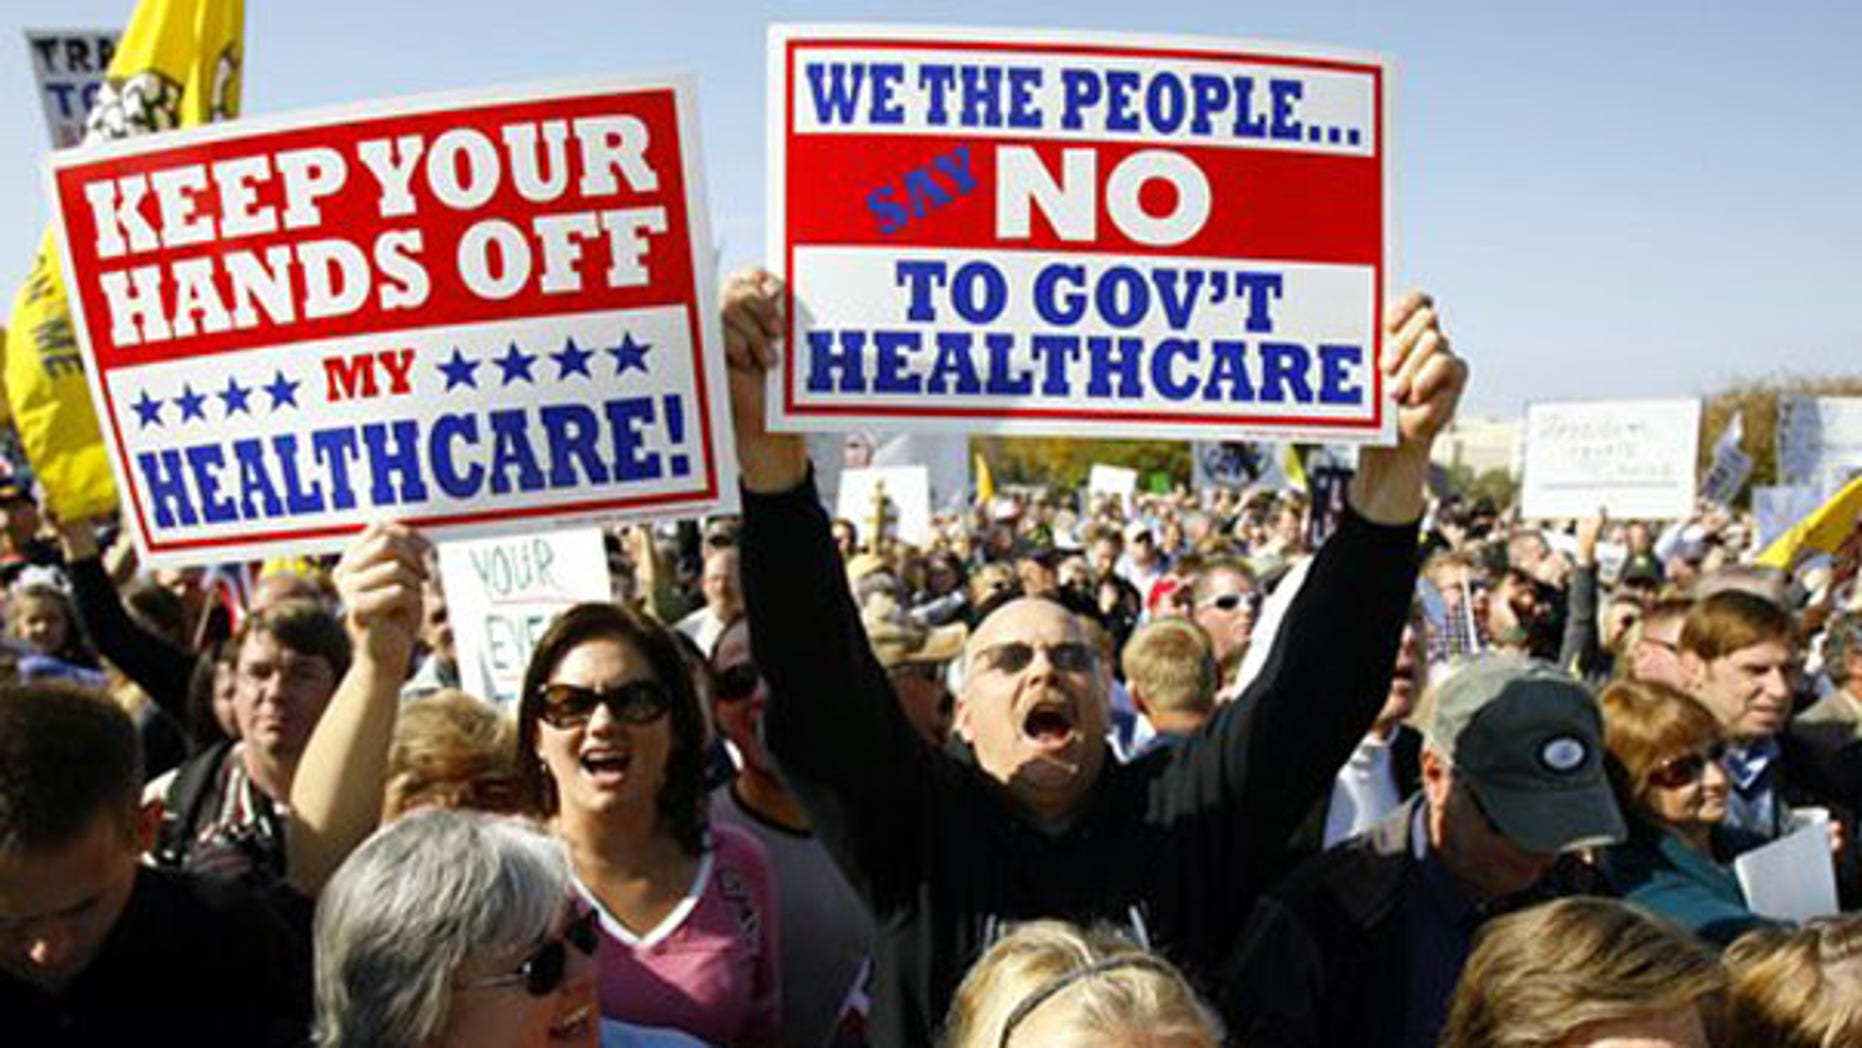 Demonstrators chant on Capitol Hill Nov. 5 during a Republican health care reform rally. (AP Photo)